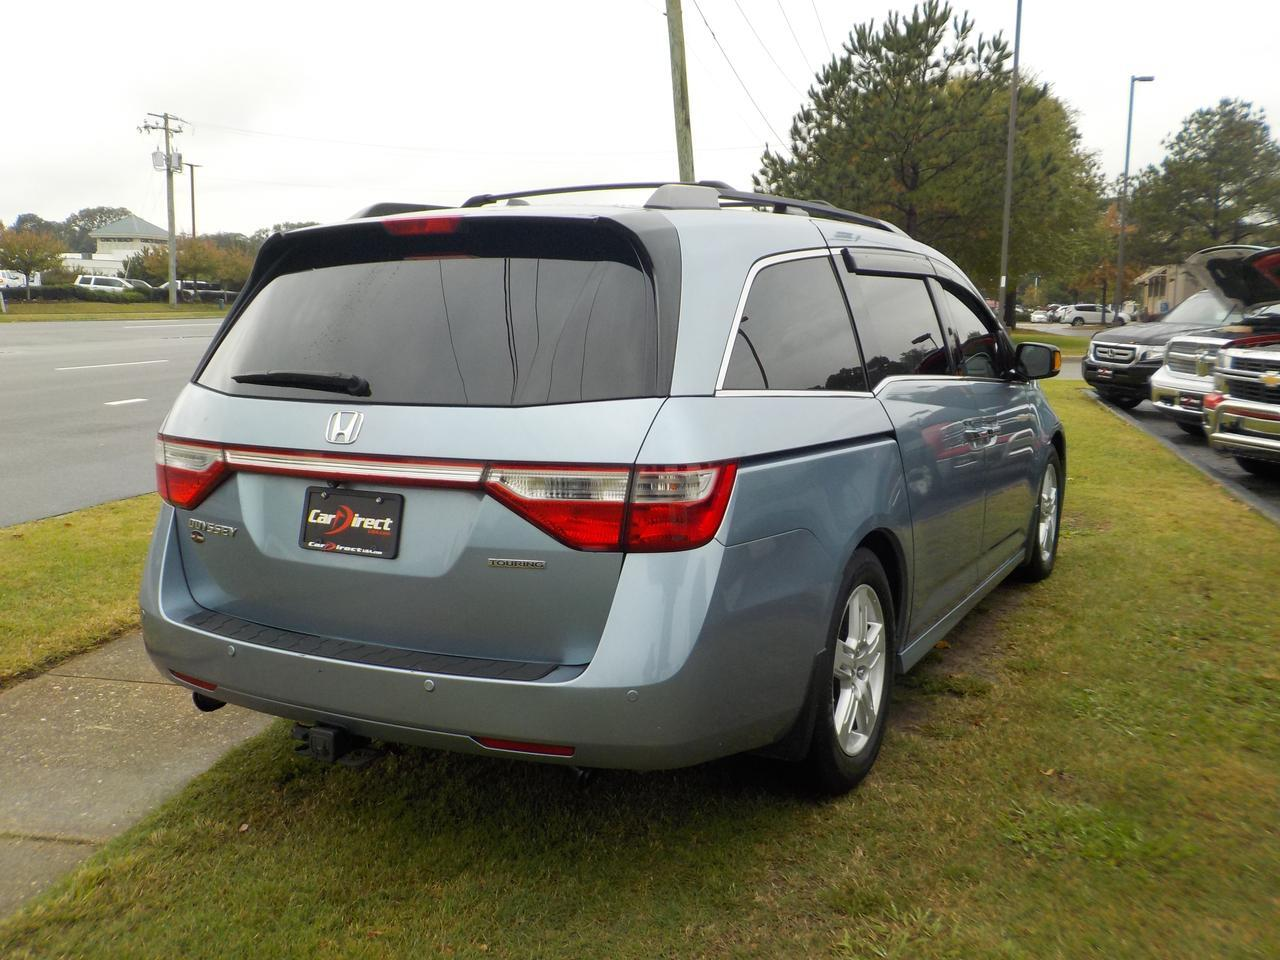 2013 HONDA ODYSSEY TOURING ELITE, WARRANTY, LEATHER HEATED SEATS, SUNROOF, NAVIGATION, DVD ENTERTAINMENT, ONE OWNER! Virginia Beach VA